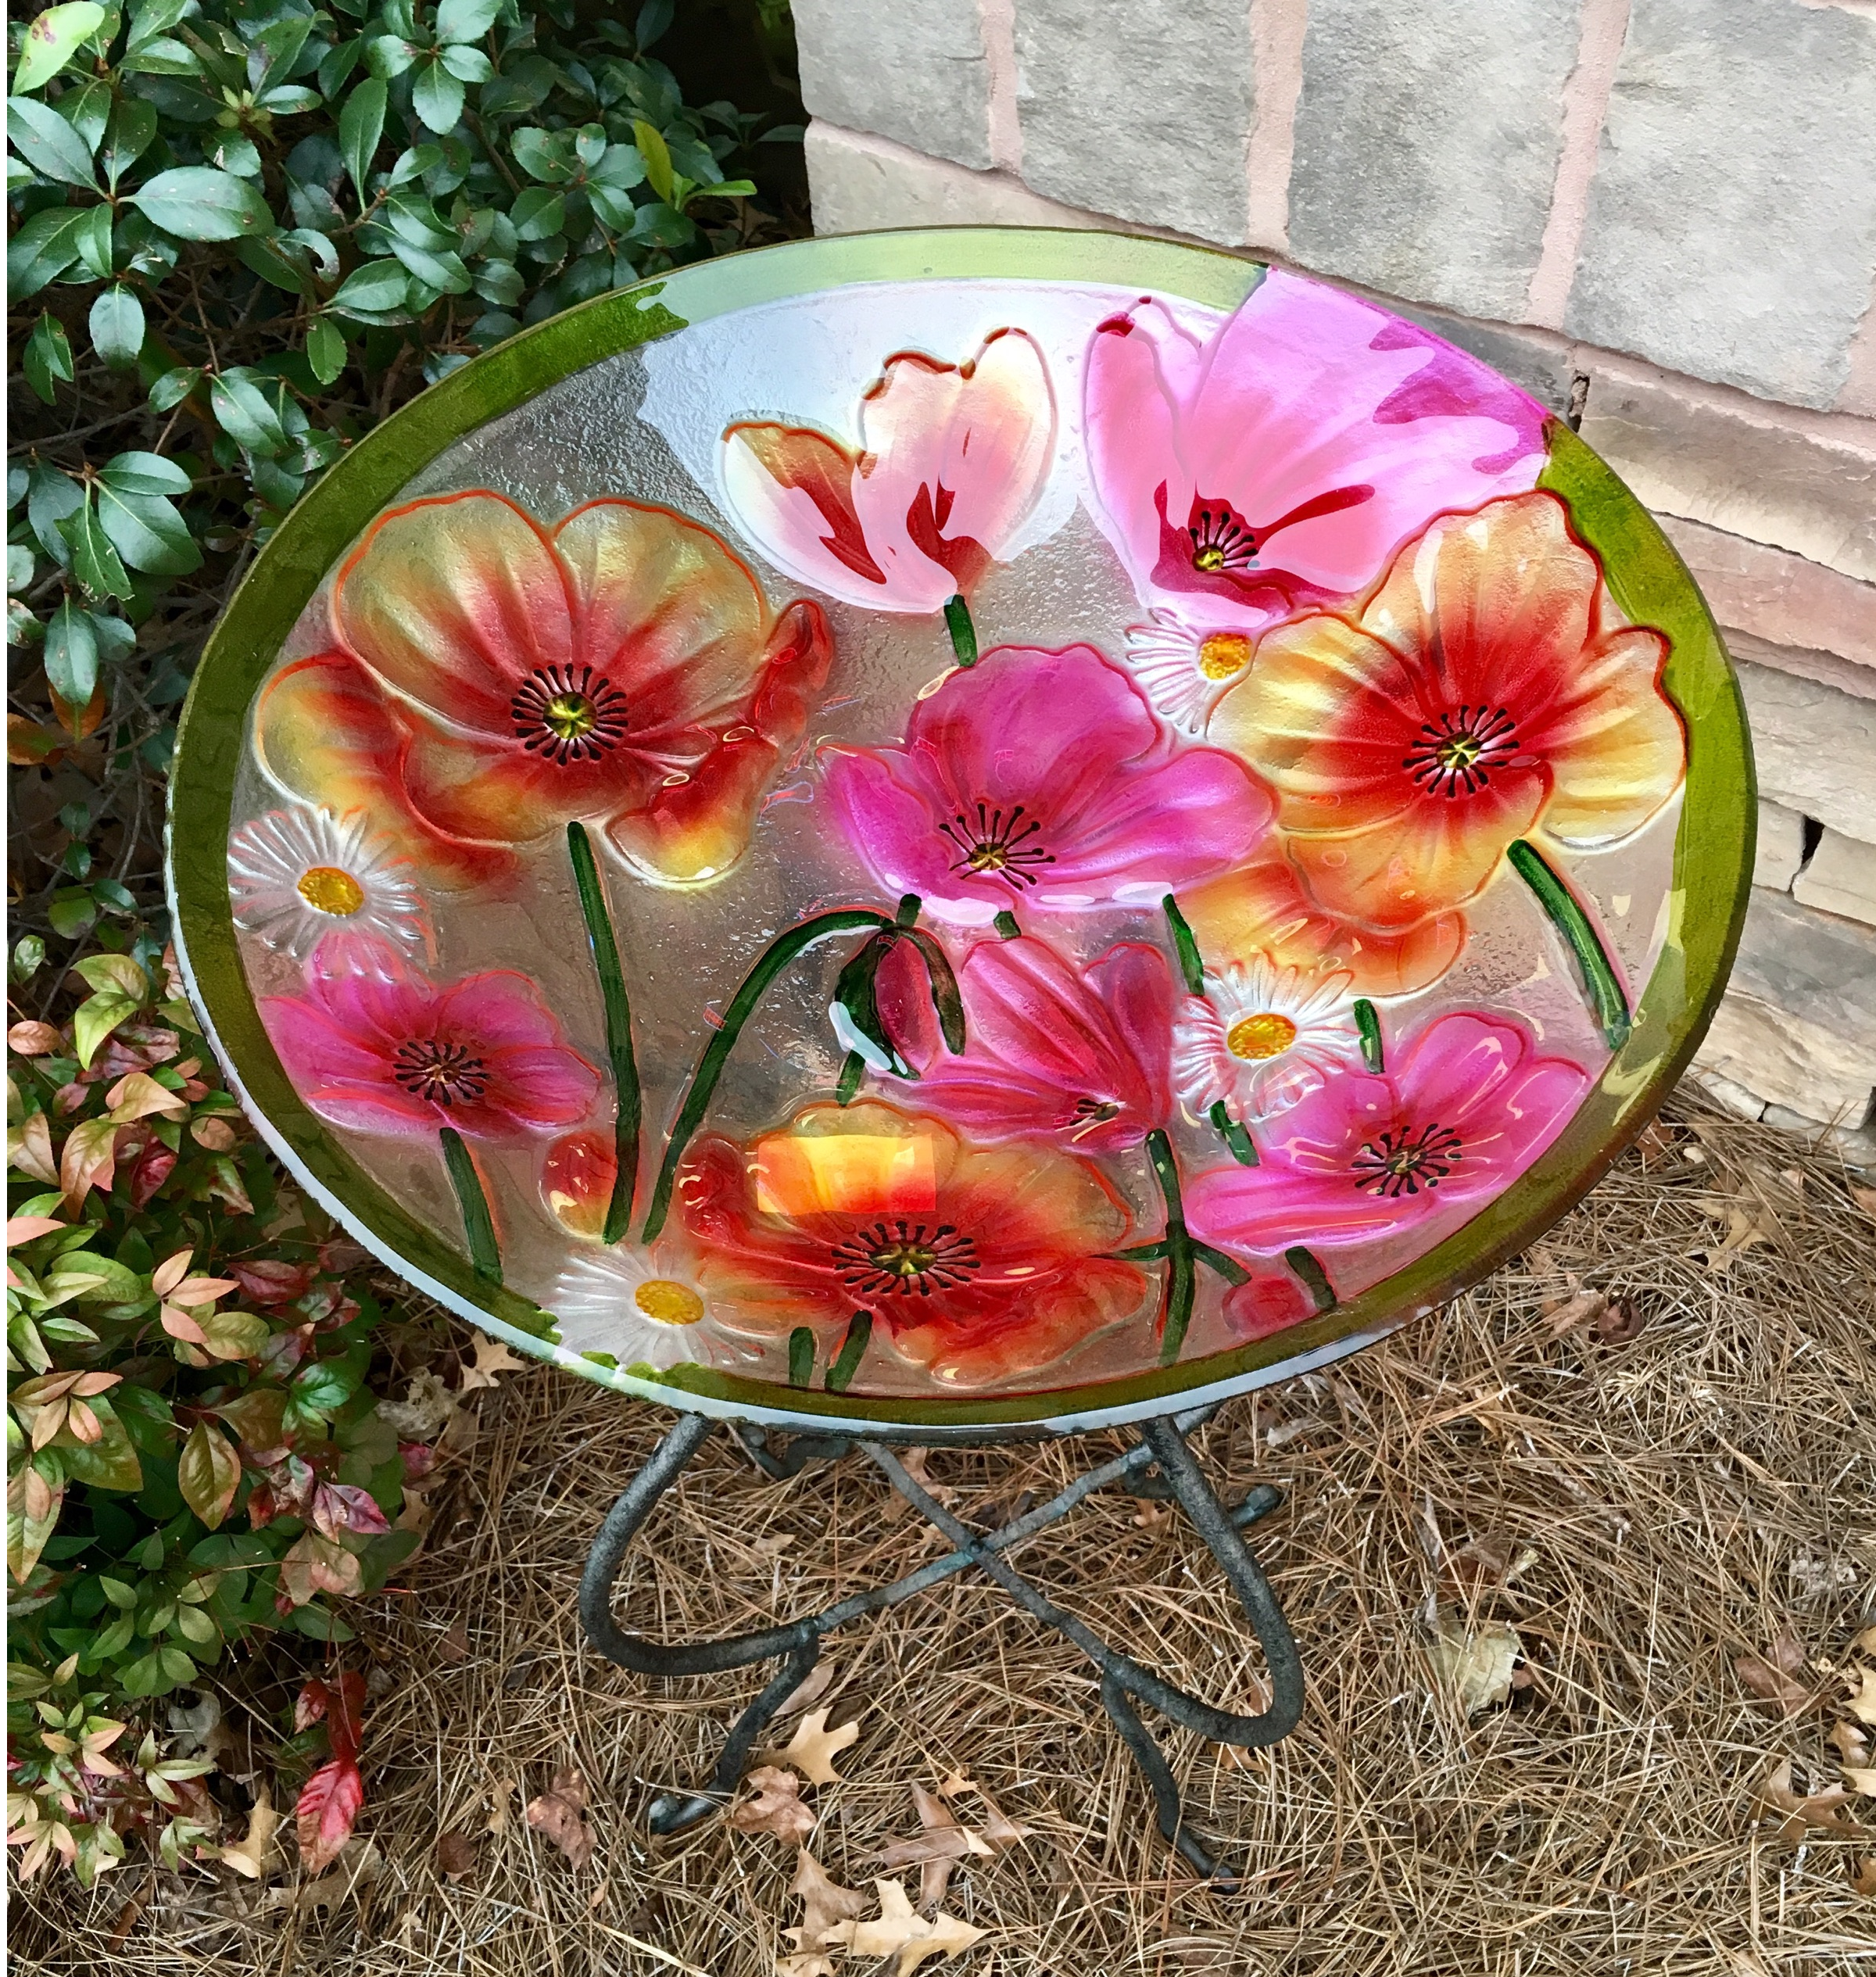 bird bath, glass, poppies, floral, garden